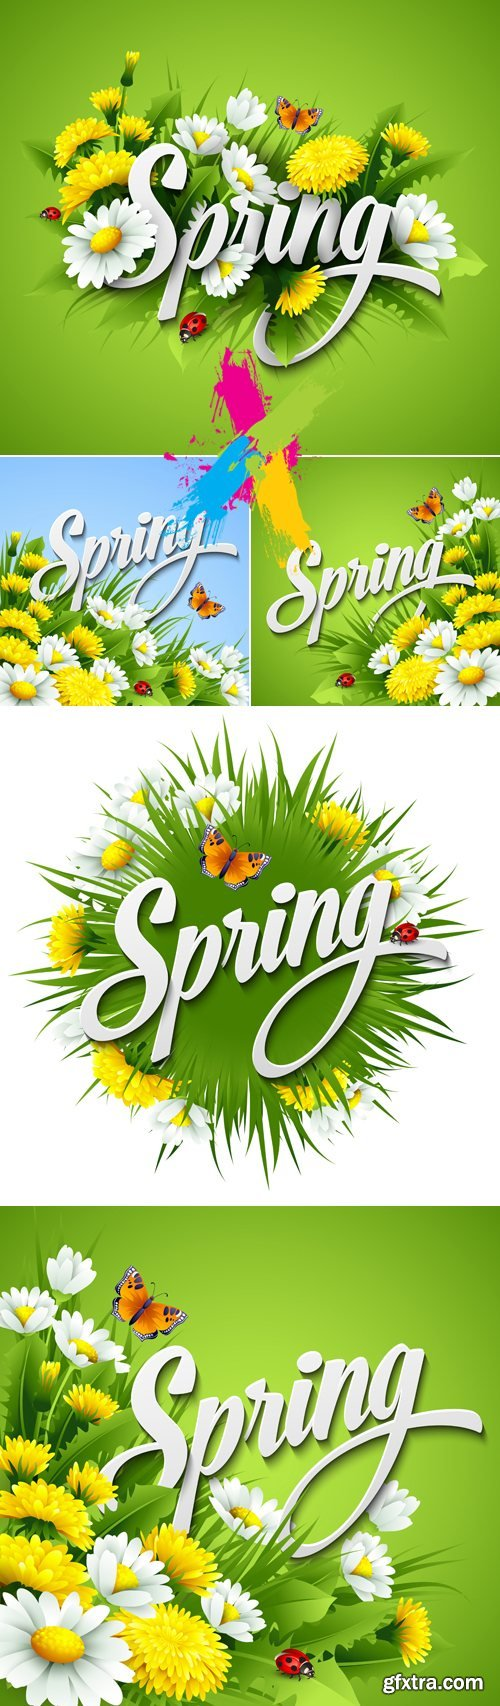 Spring, Flowers & Grass Backgrounds Vector